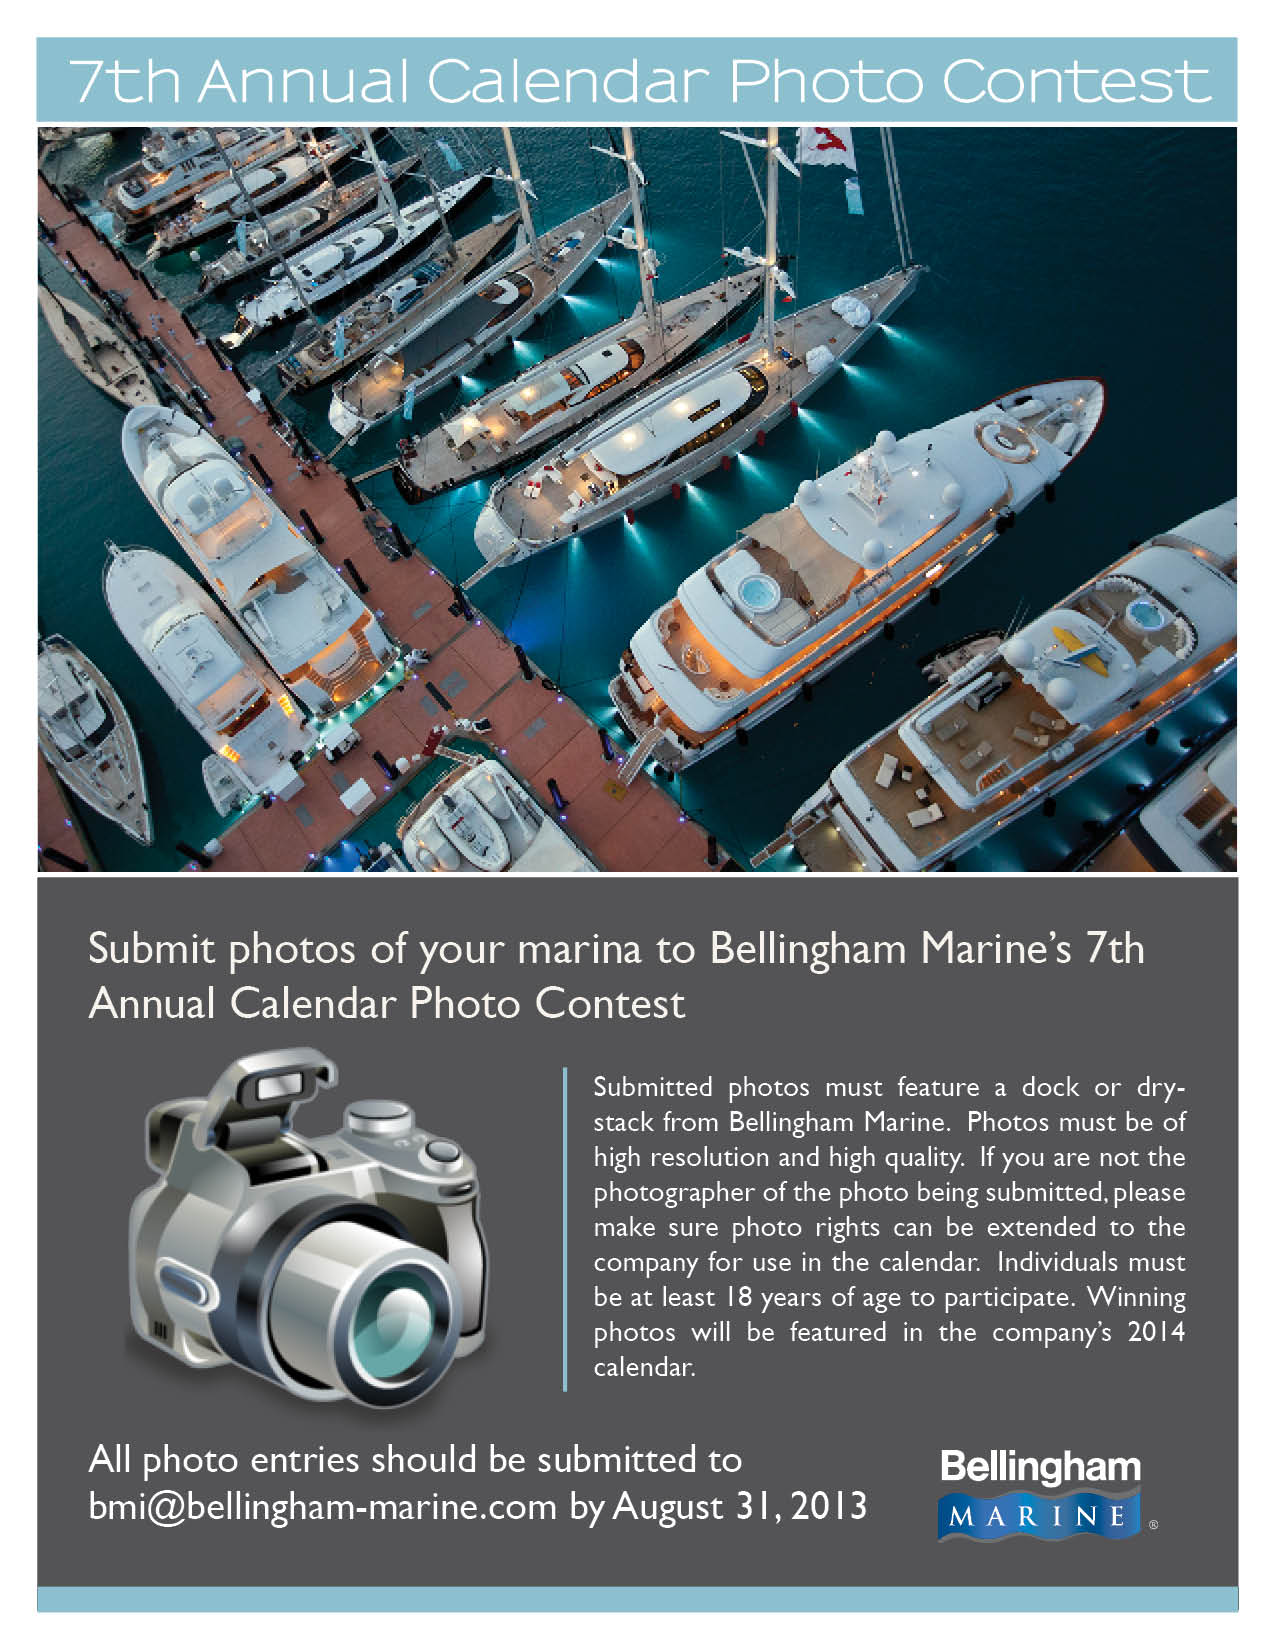 Marina photo contest